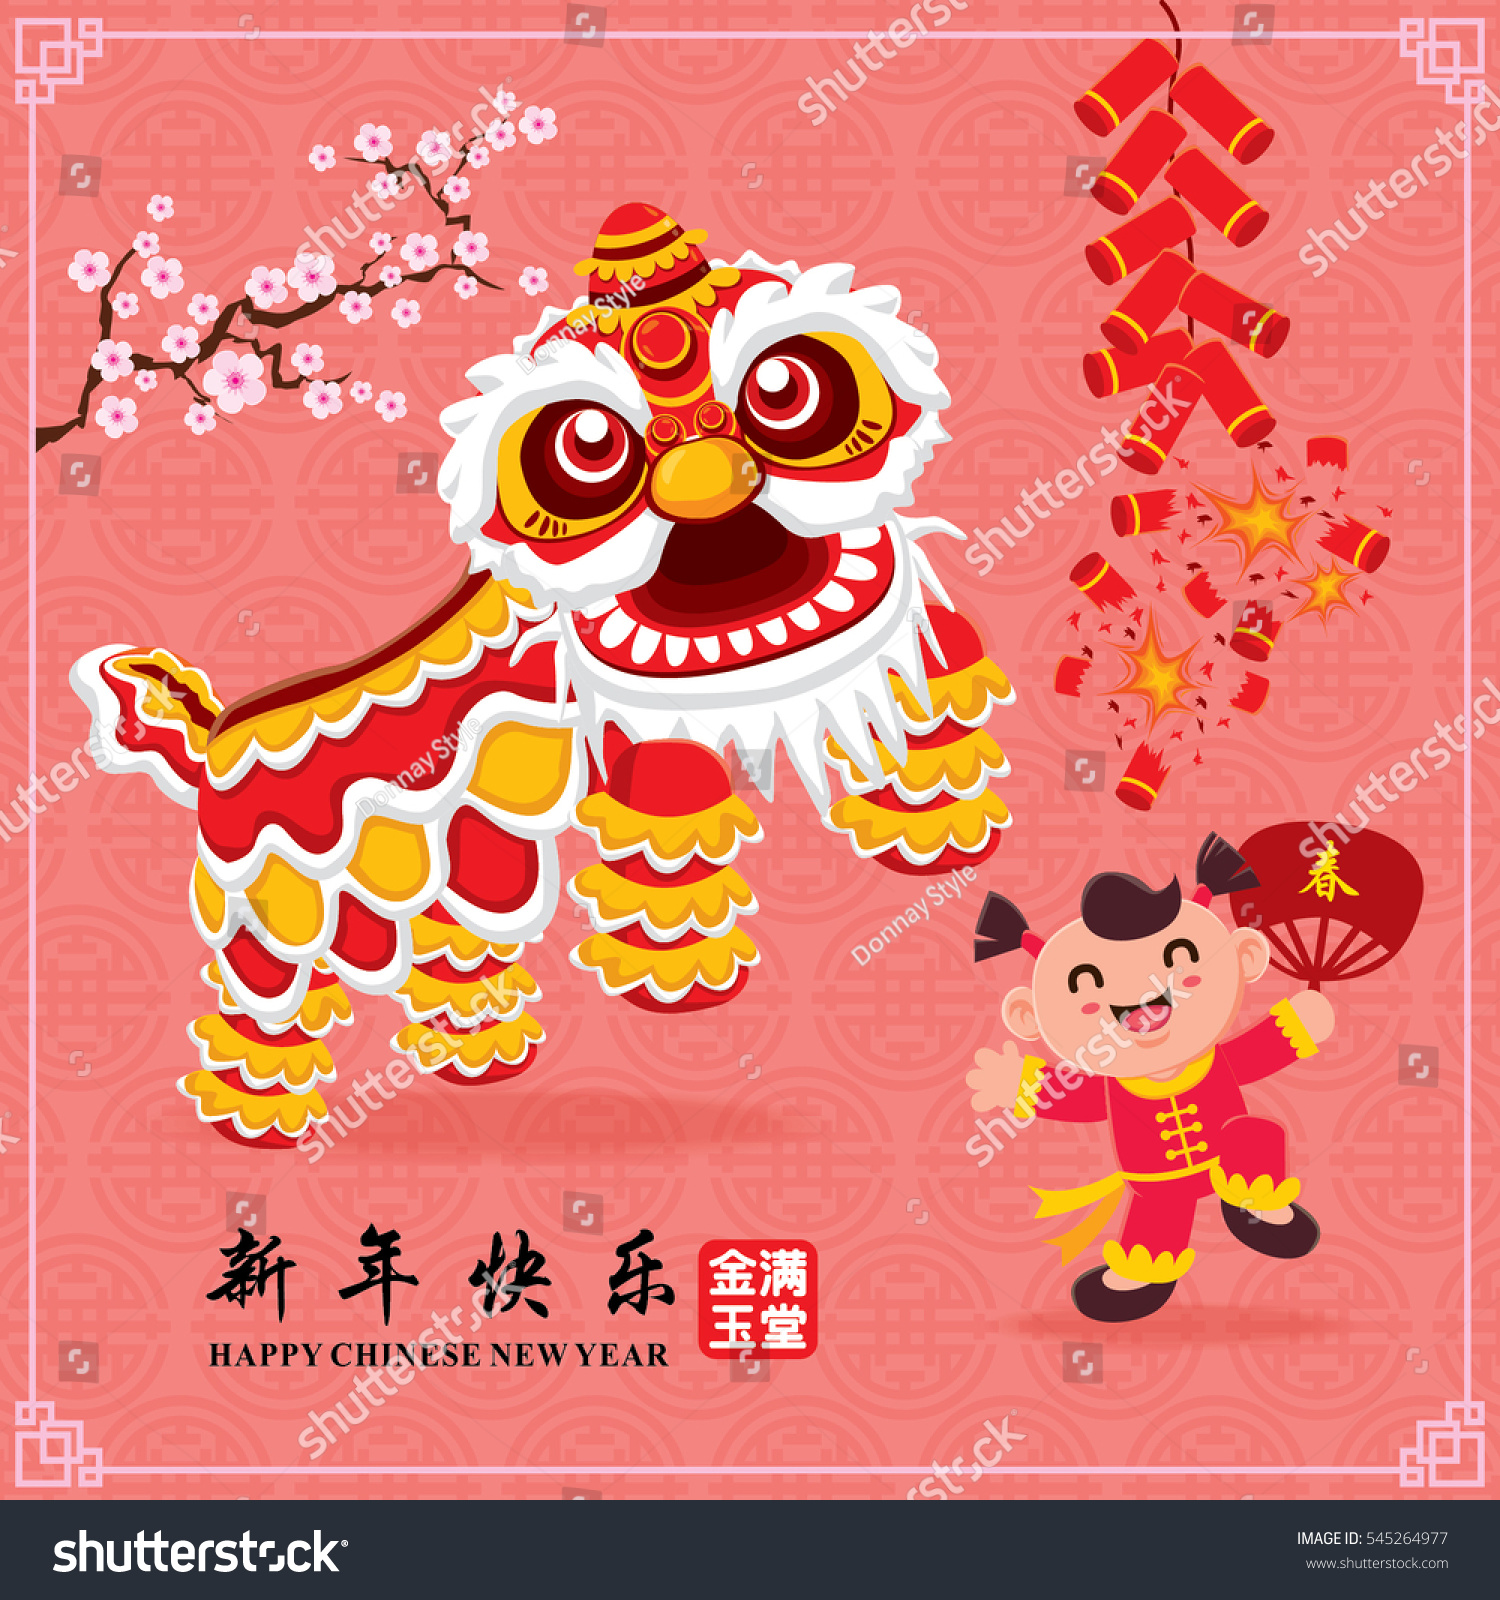 Vintage Chinese Calendar : Vintage chinese new year poster design stock vector